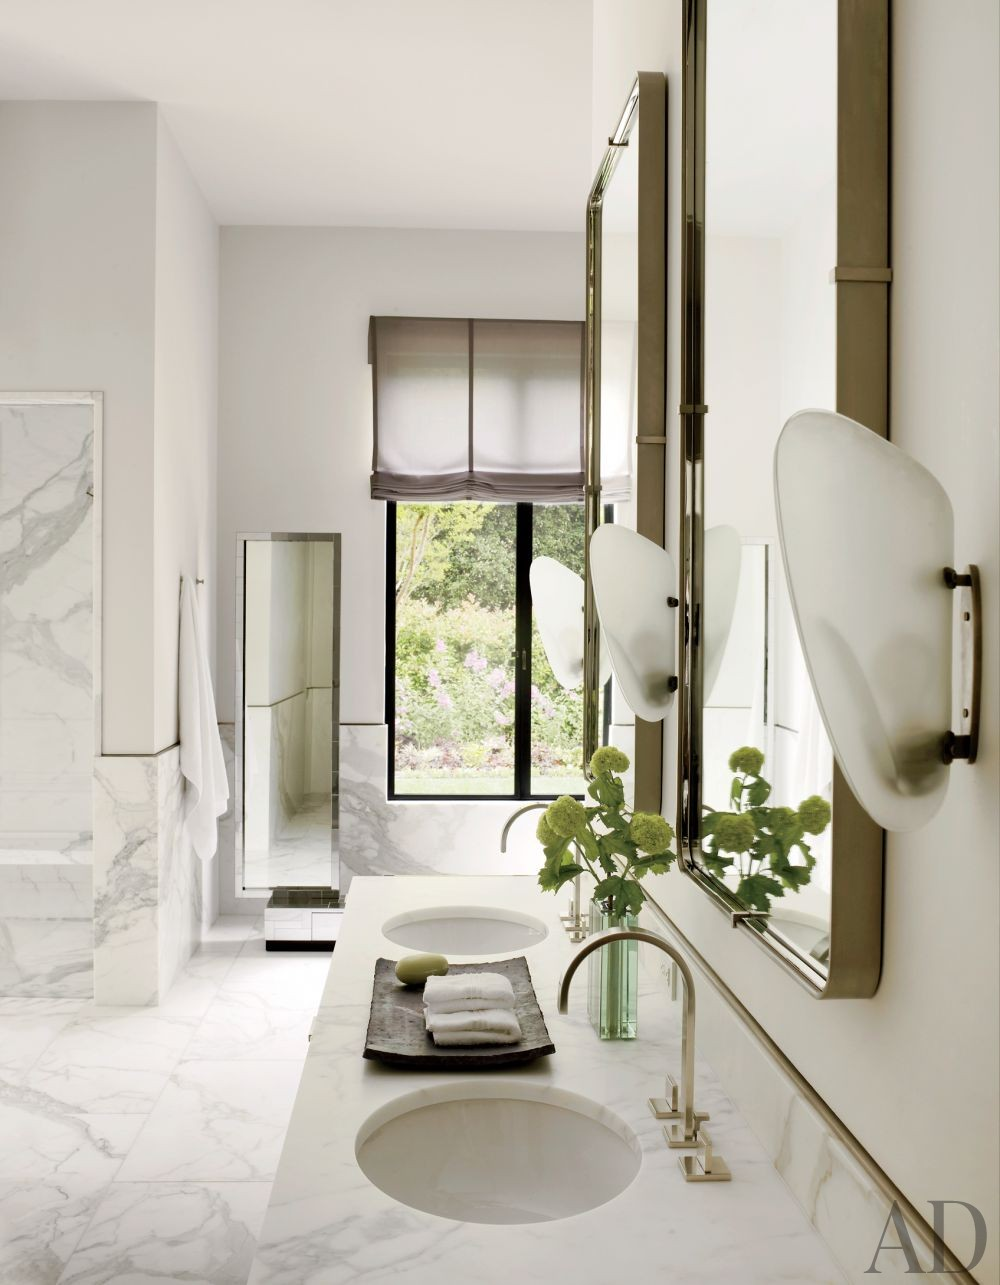 Contemporary bathroom by steven volpe design by for Architectural digest bathroom designs